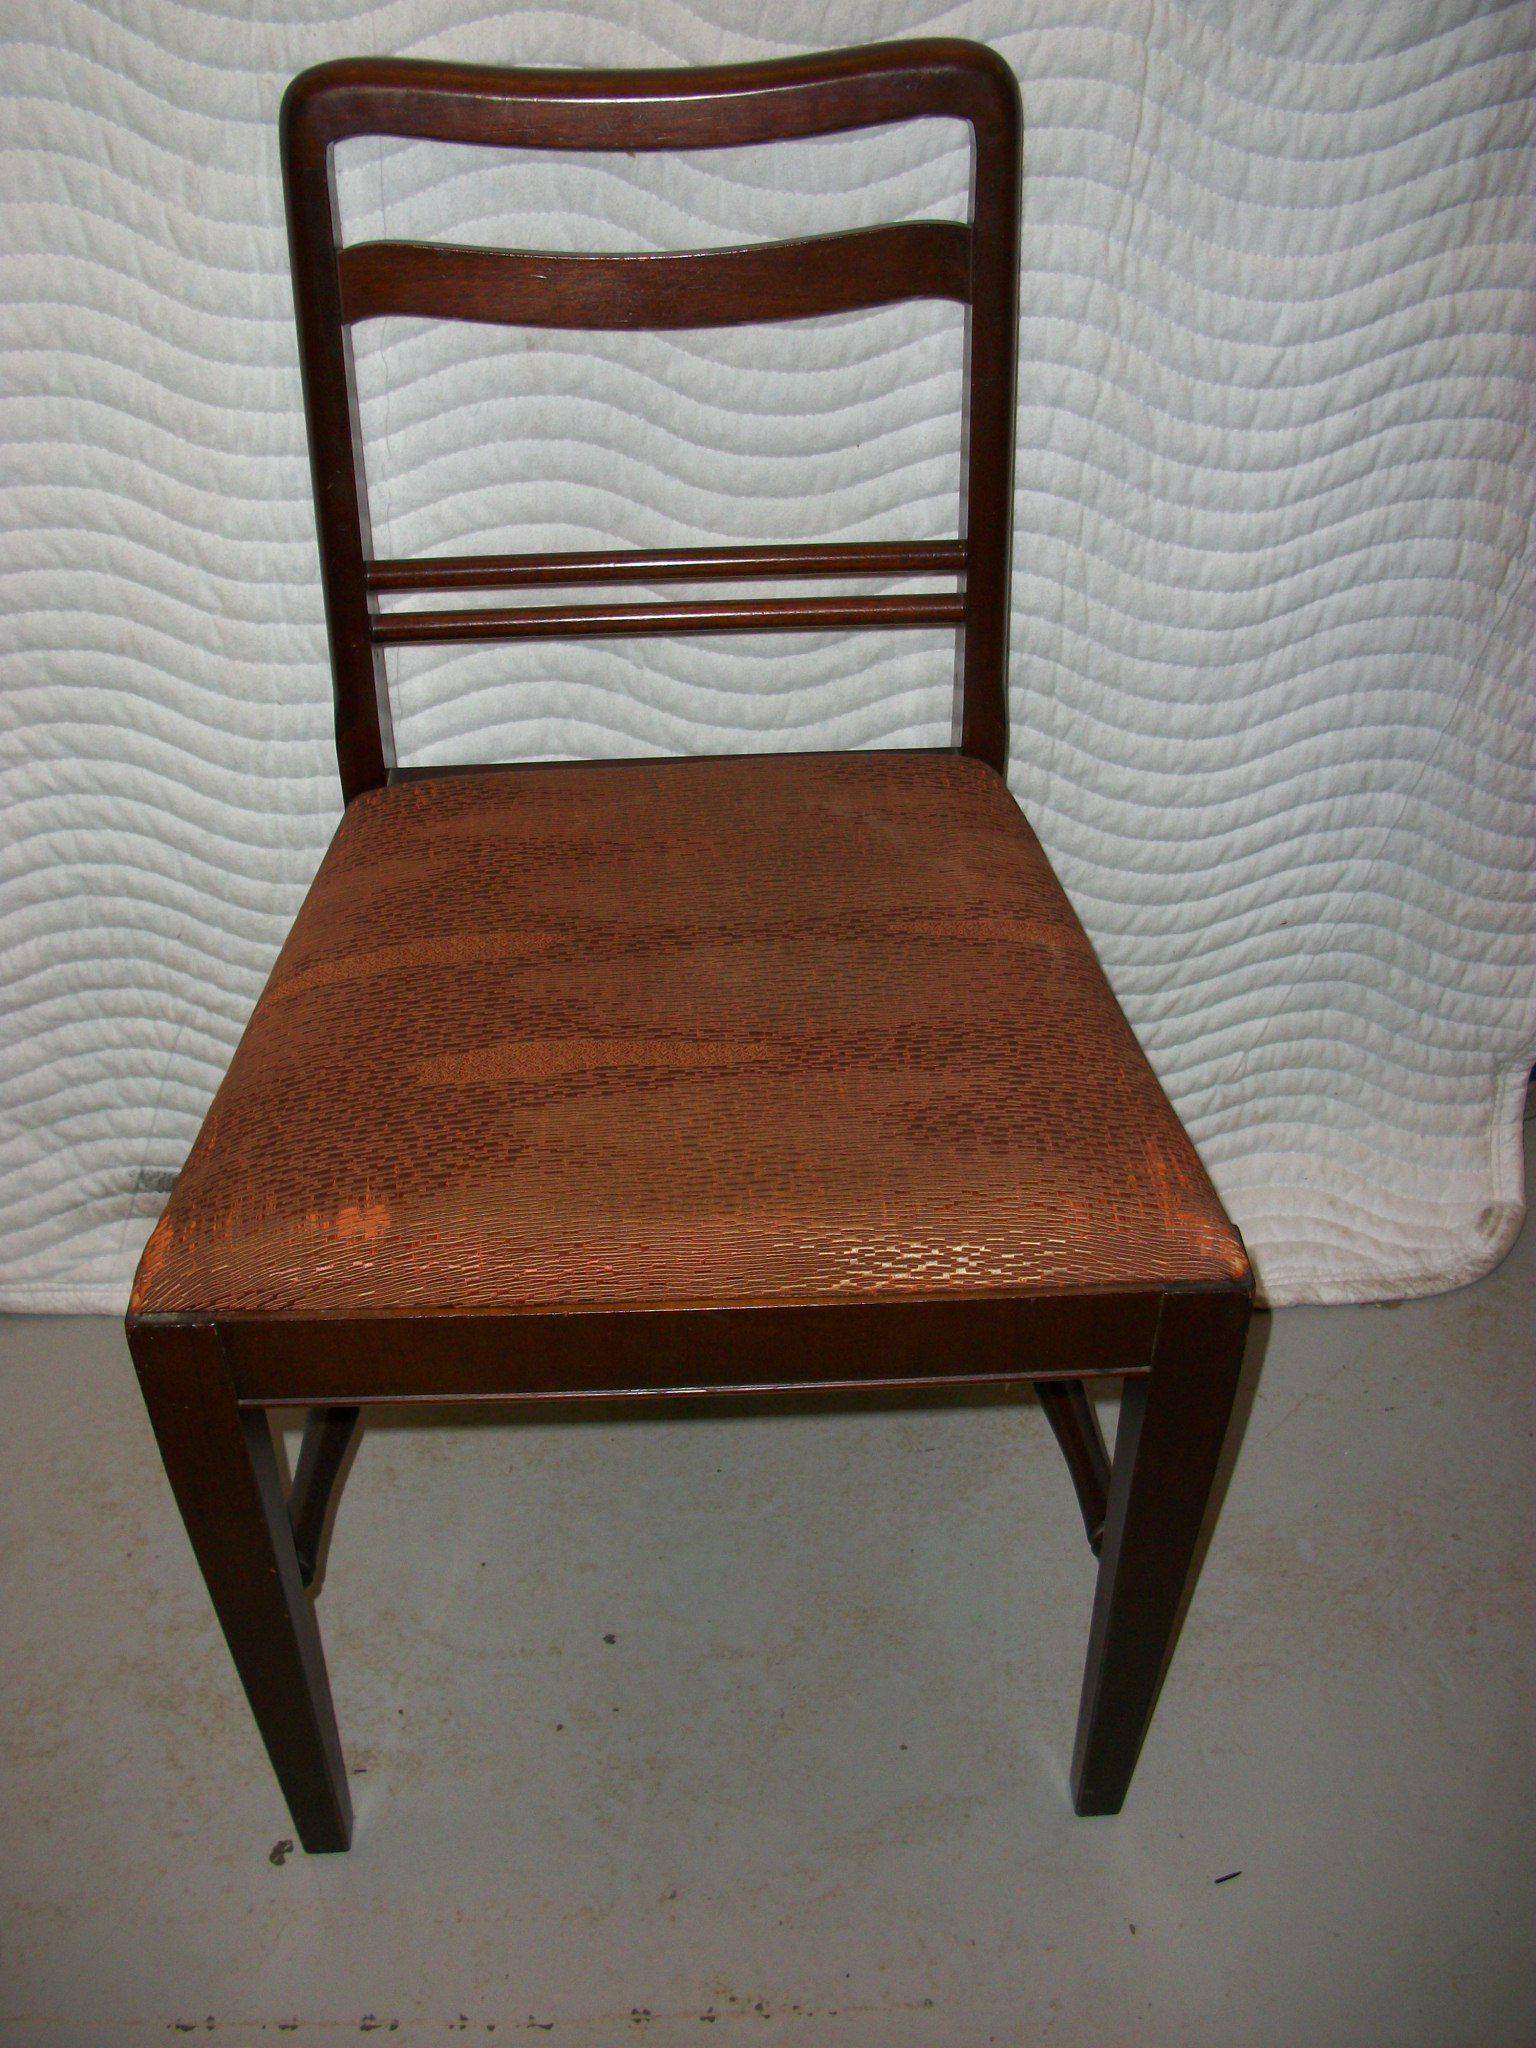 1992 40 4 chair West Michigan Furniture pany ca 1927